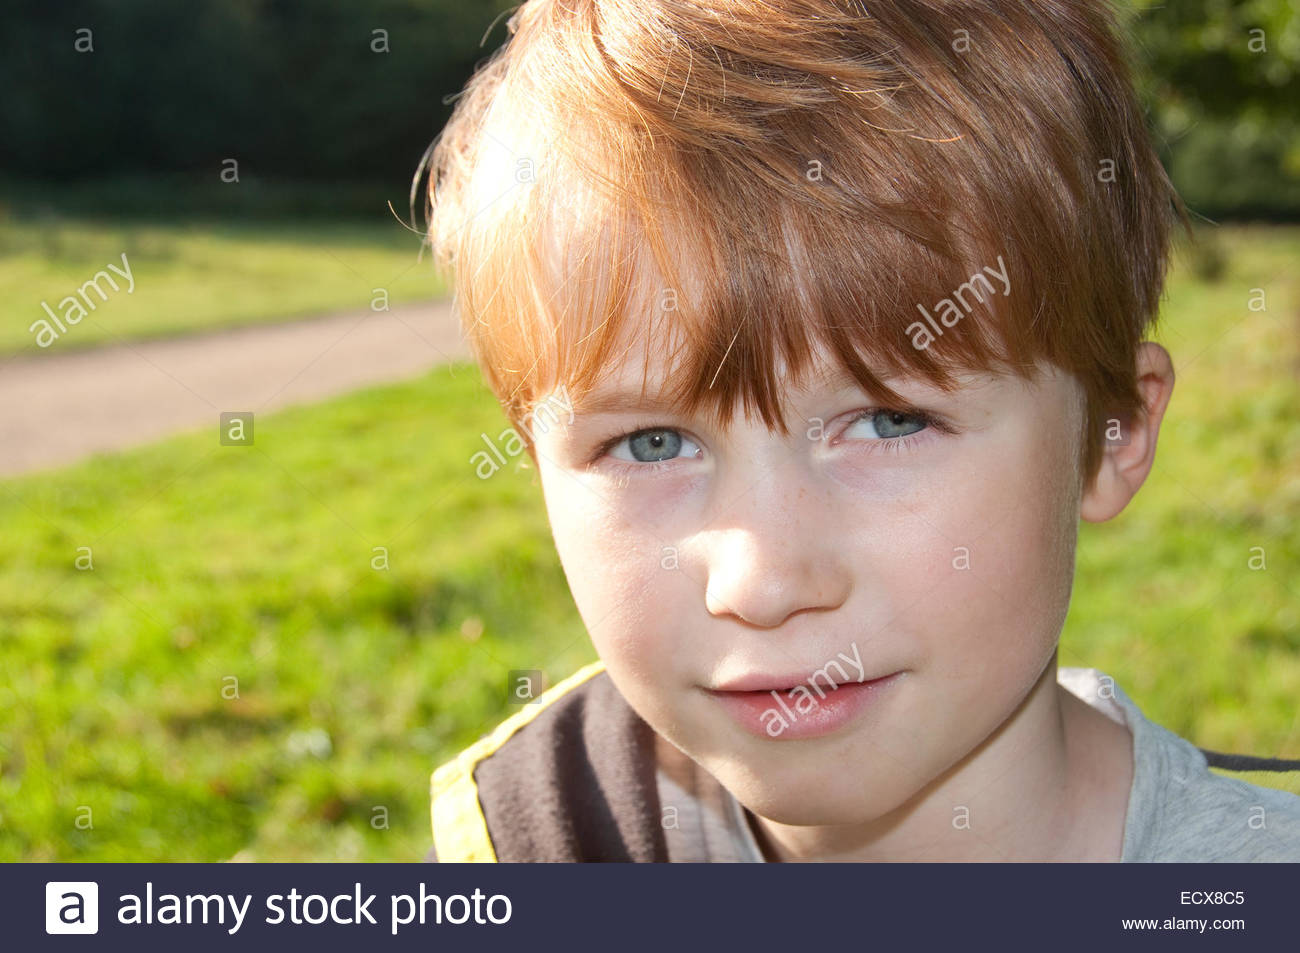 red headed 8 year old boy photographed in norfolk during the summer